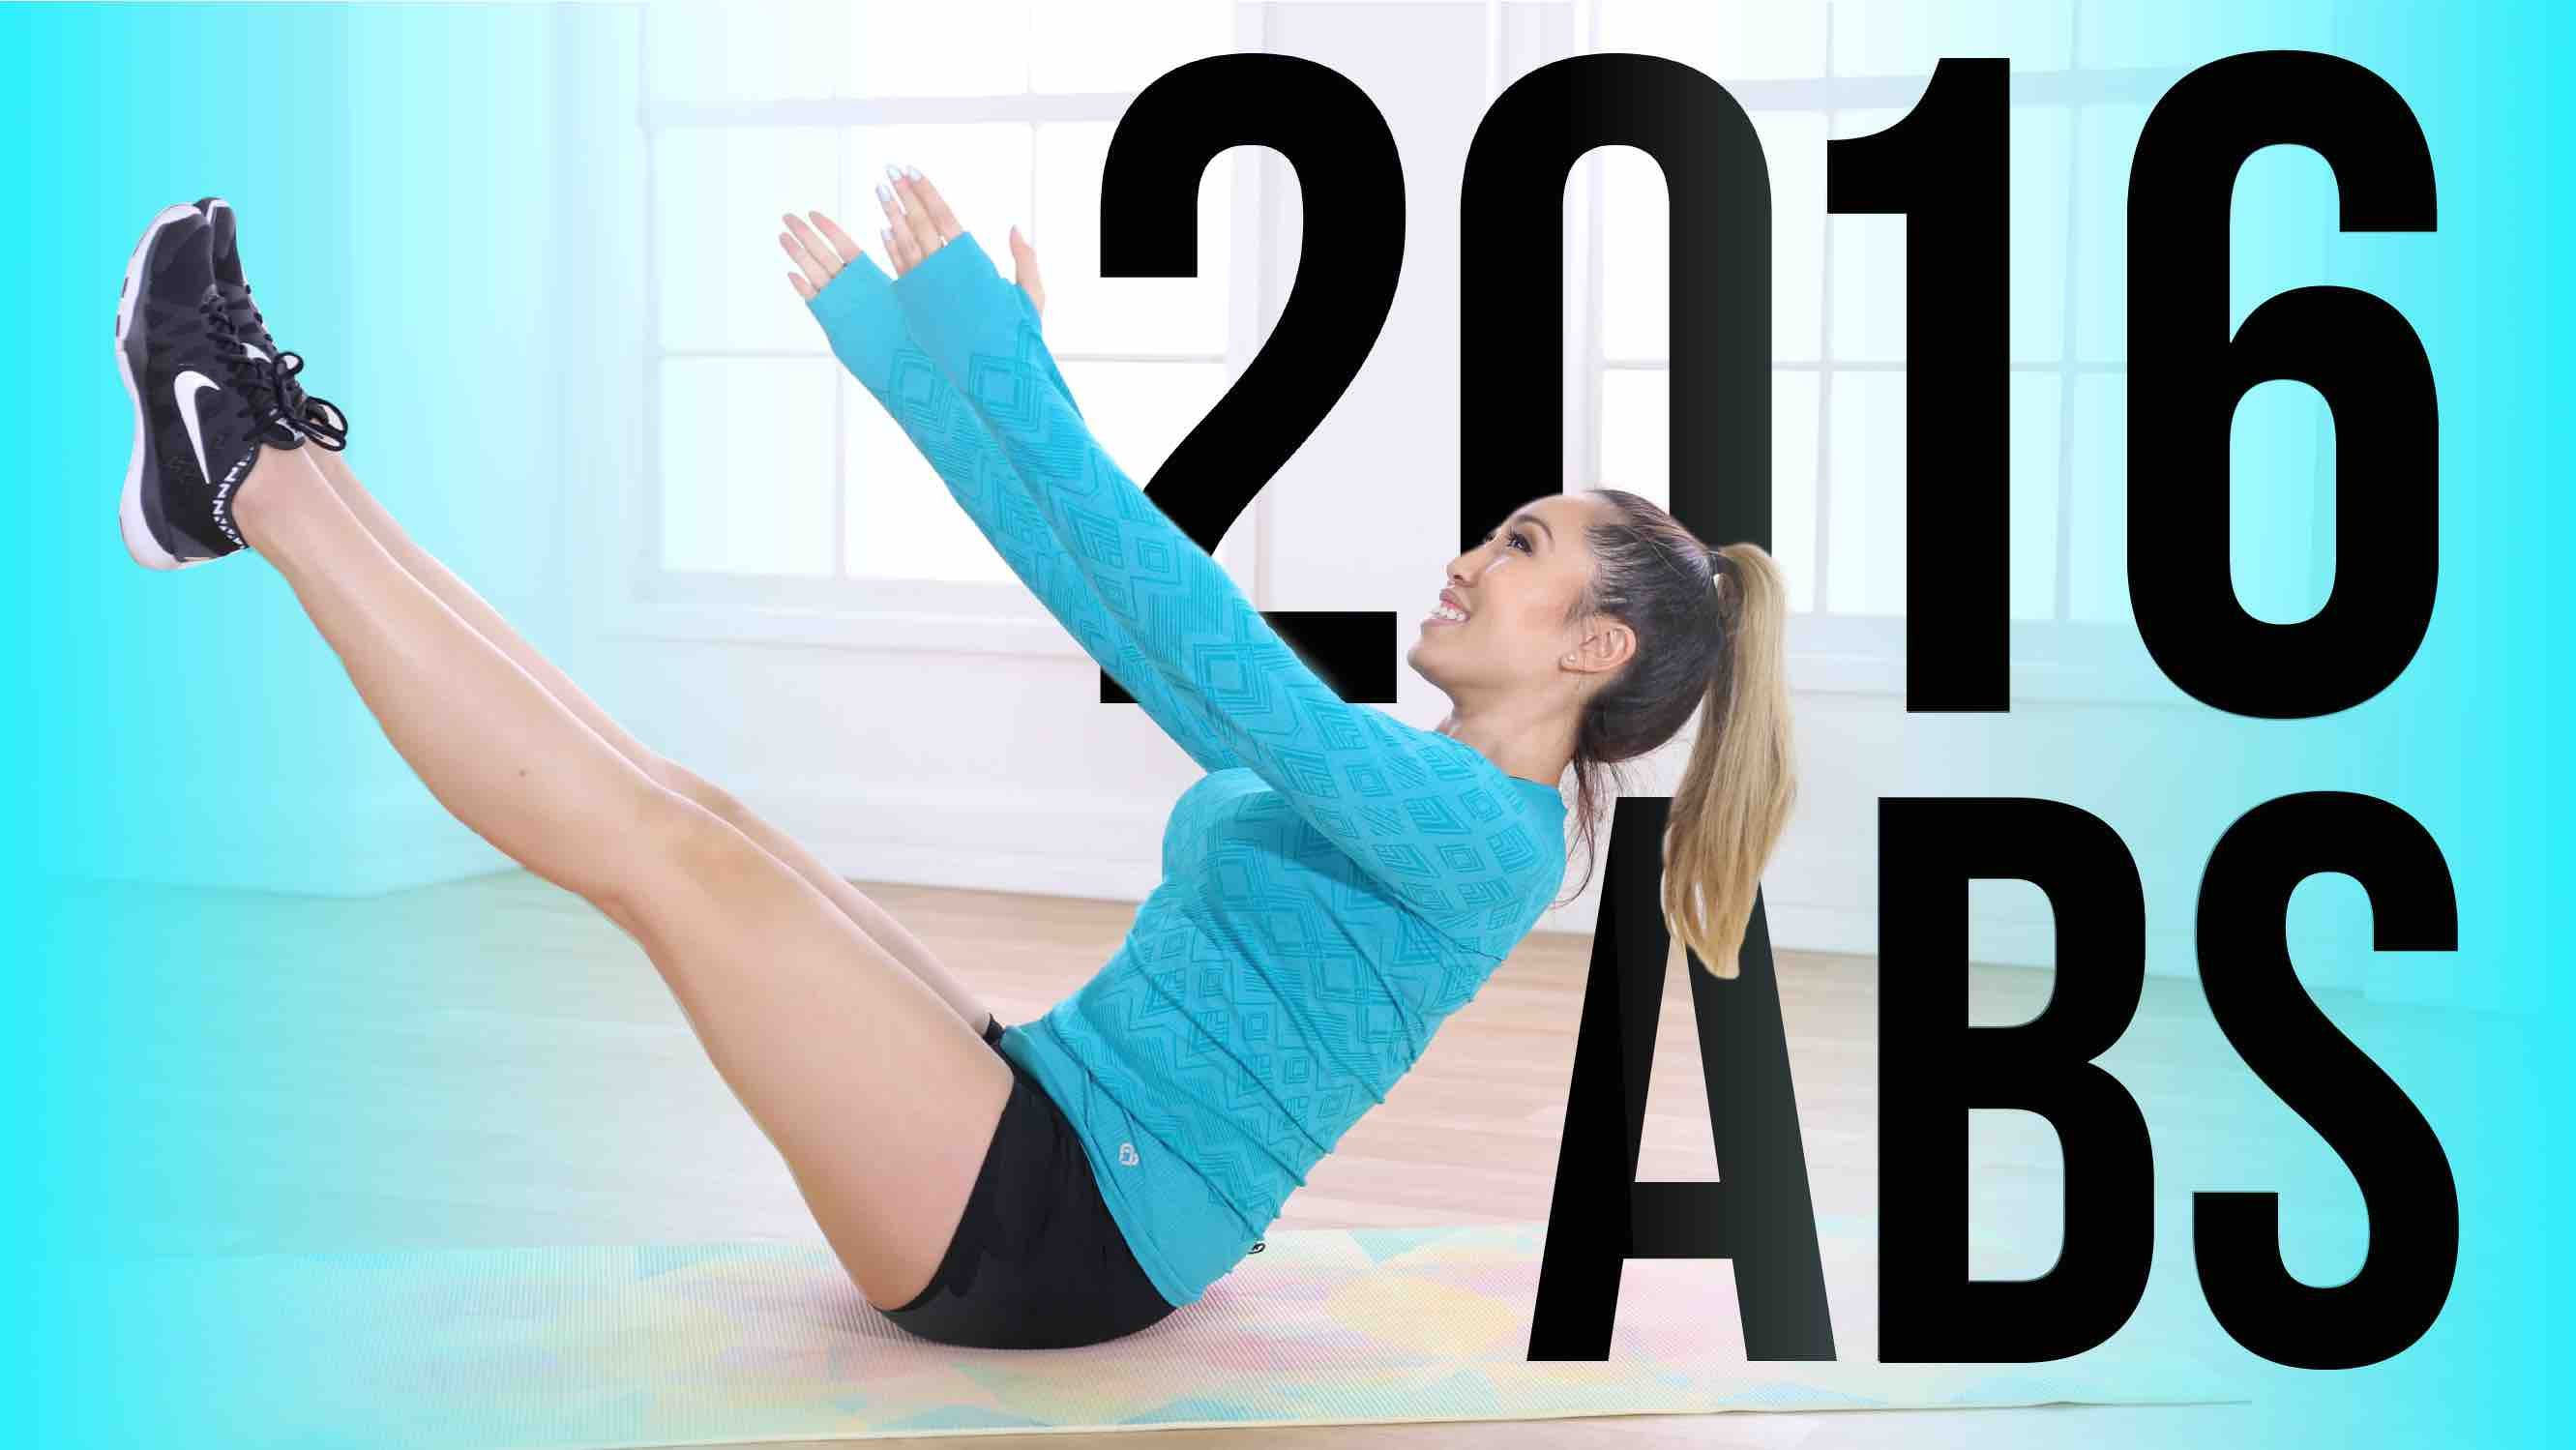 The ULTIMATE 2016 AB WORKOUT!